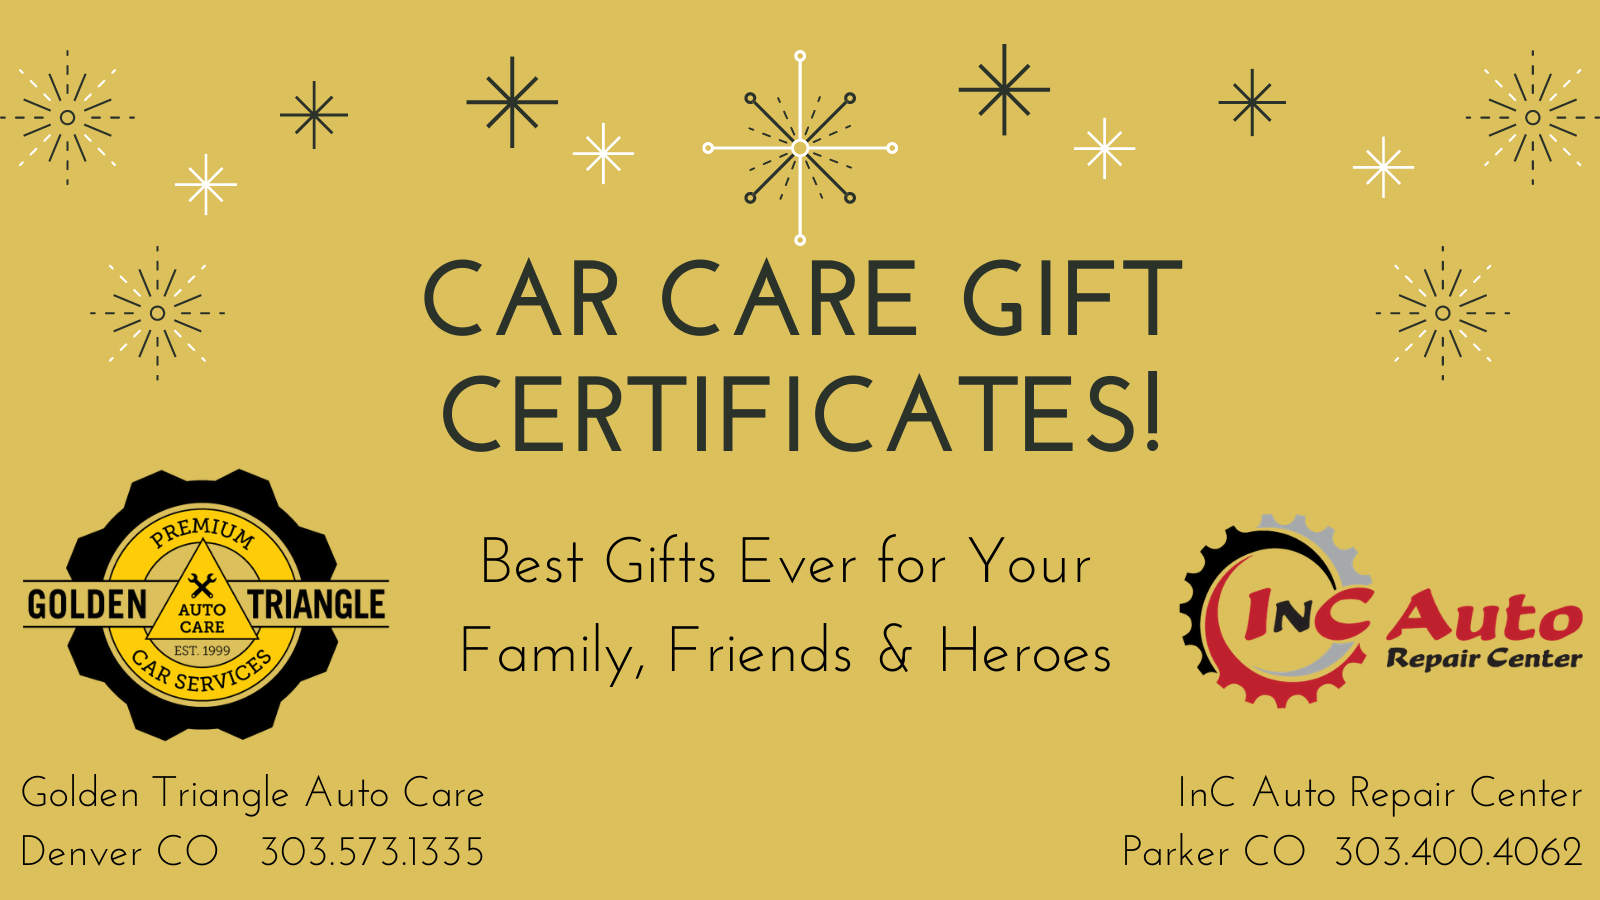 Car Care Gift Certificates - Best Gifts Ever for your Family, Friends & Heroes